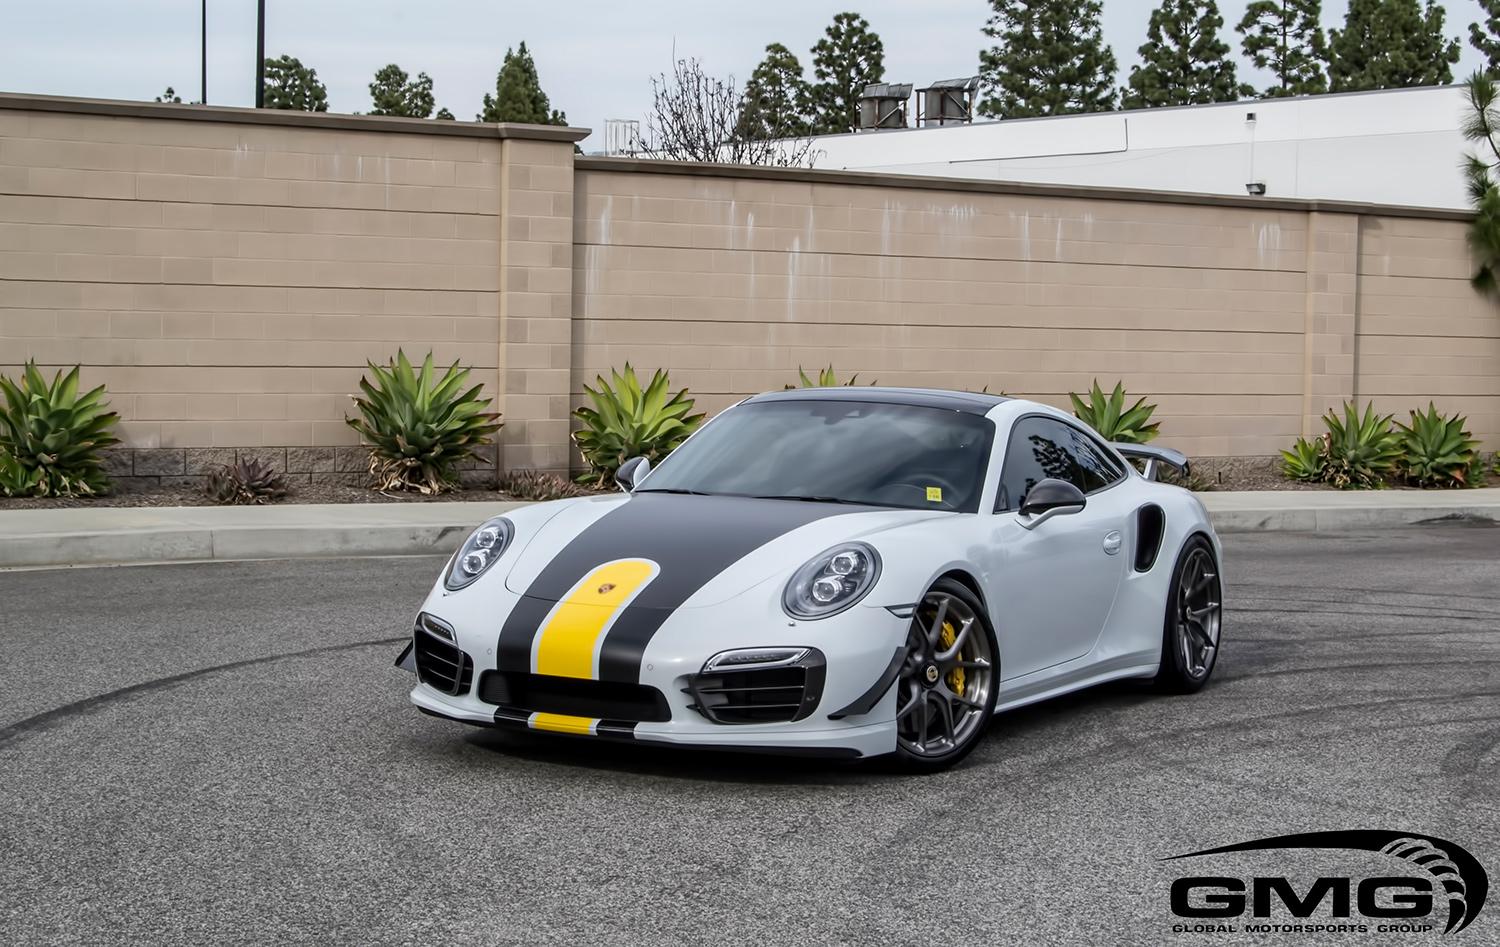 Porsche 991.1 Turbo S (White, Black, & Yellow)